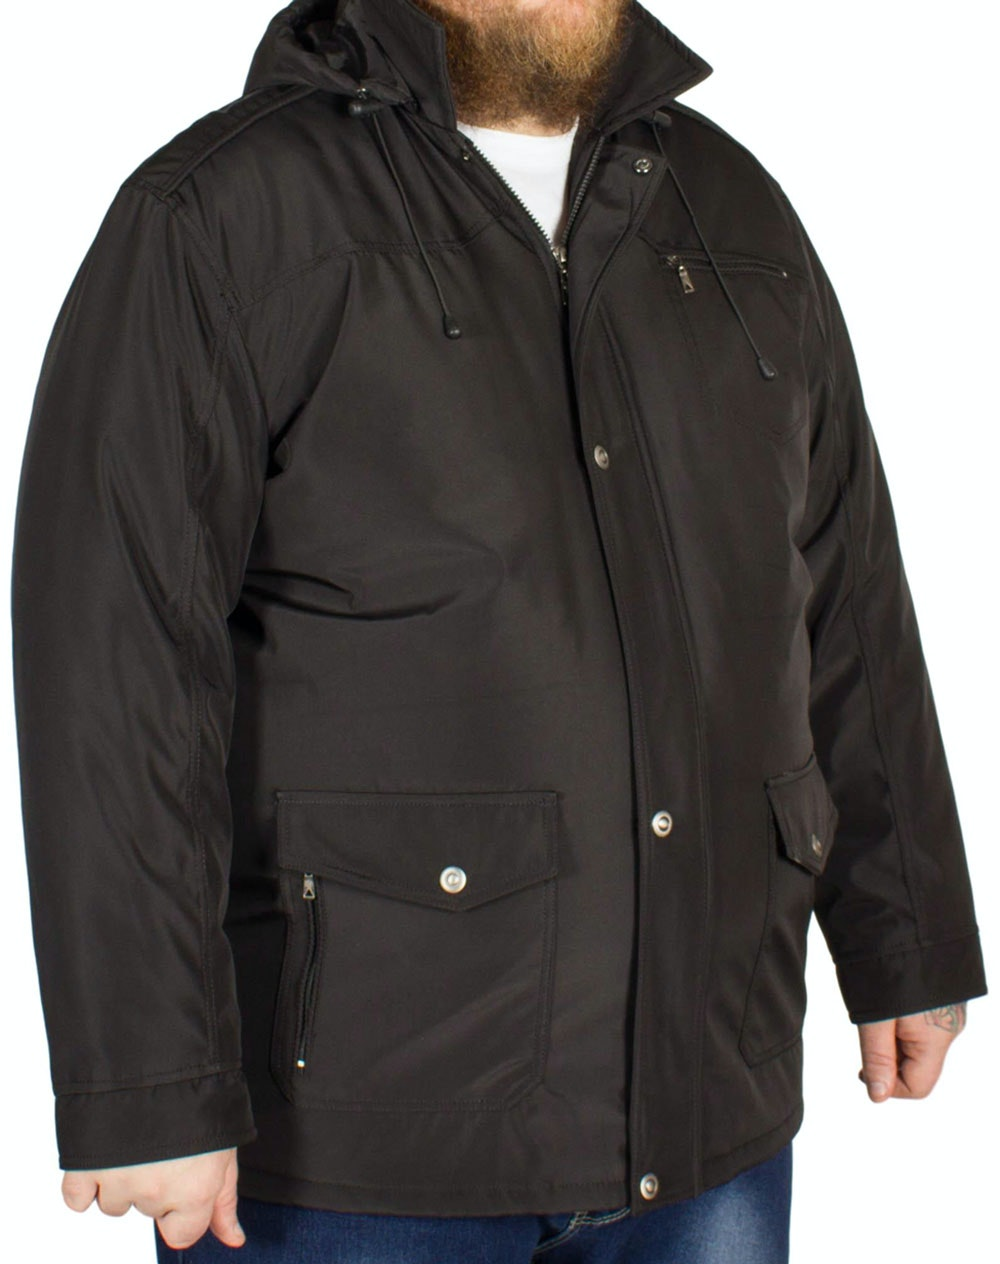 Saxon Brecon Coat Black